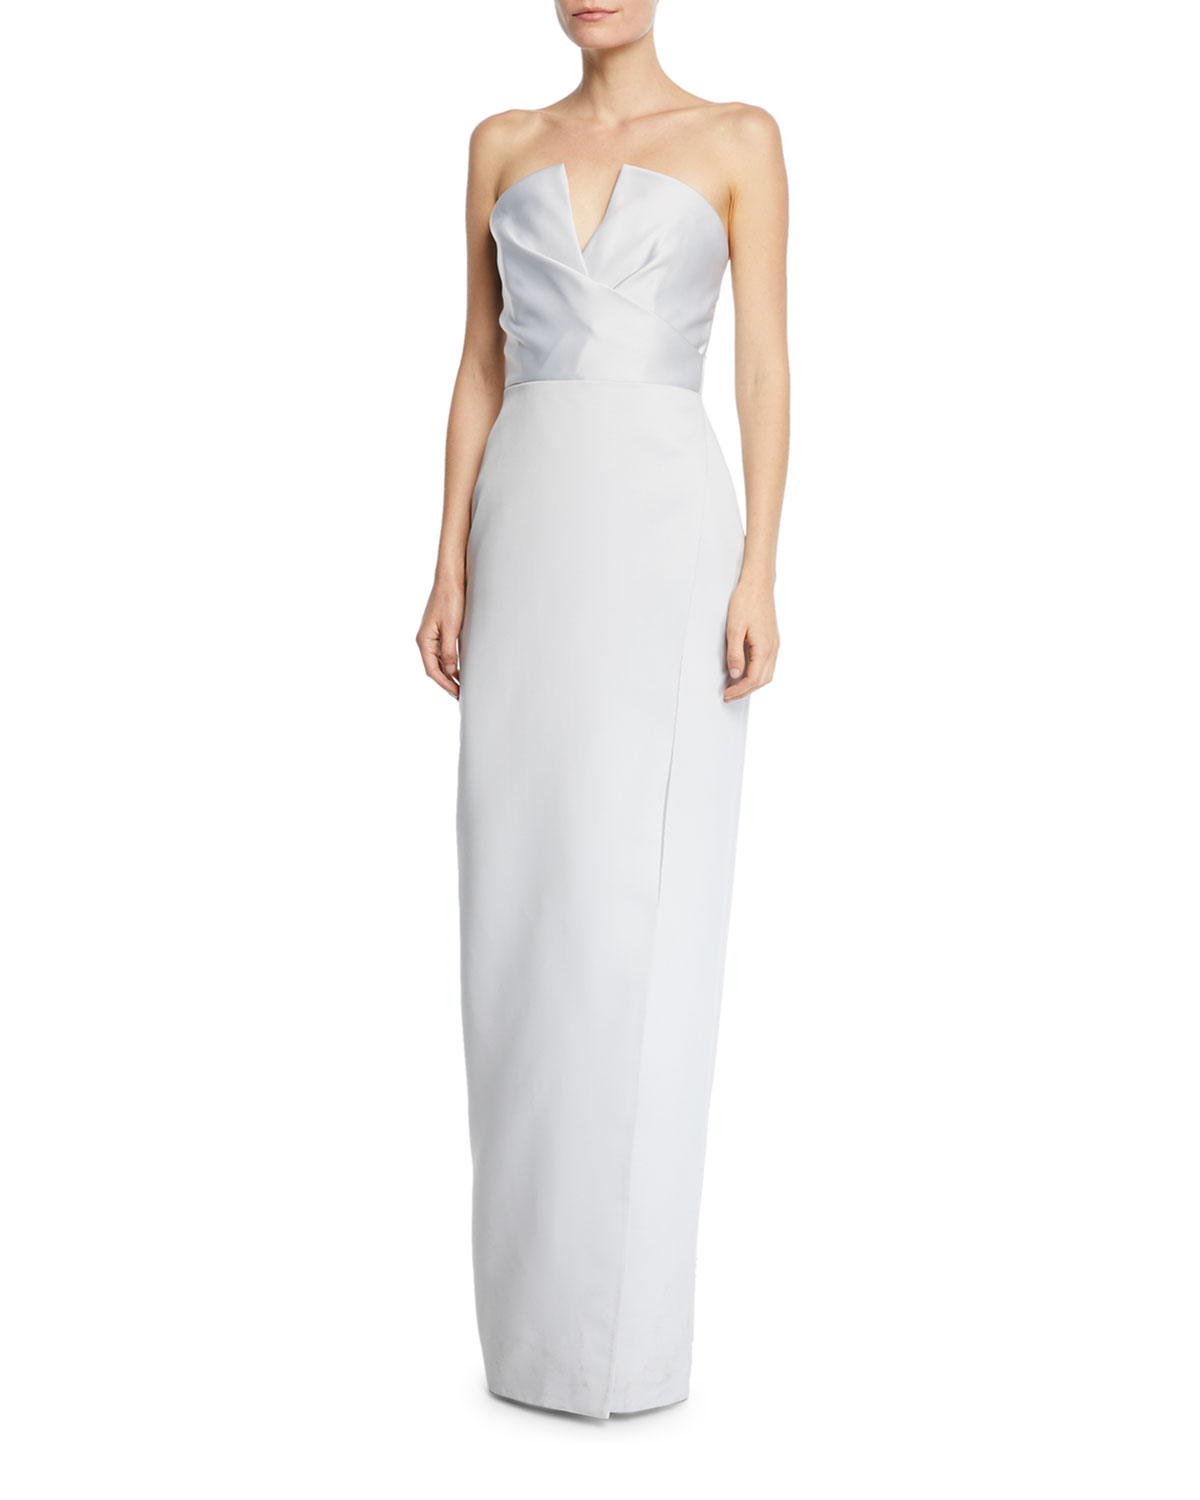 Darcy Strapless V-Neck Gown w/ Slit